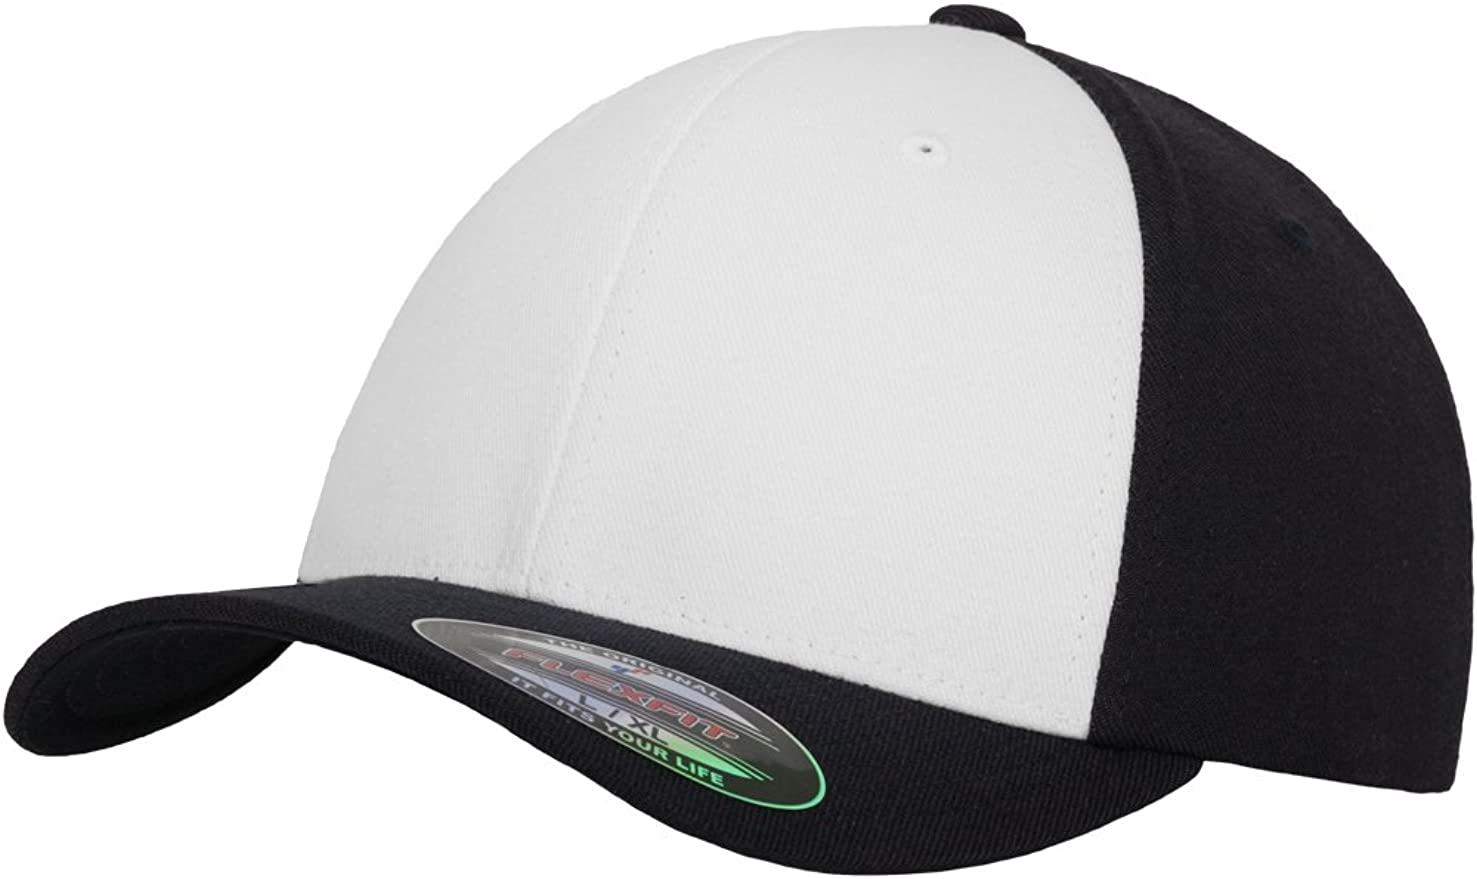 Flexfit Performance - Gorra para Adulto: Amazon.es: Ropa y accesorios